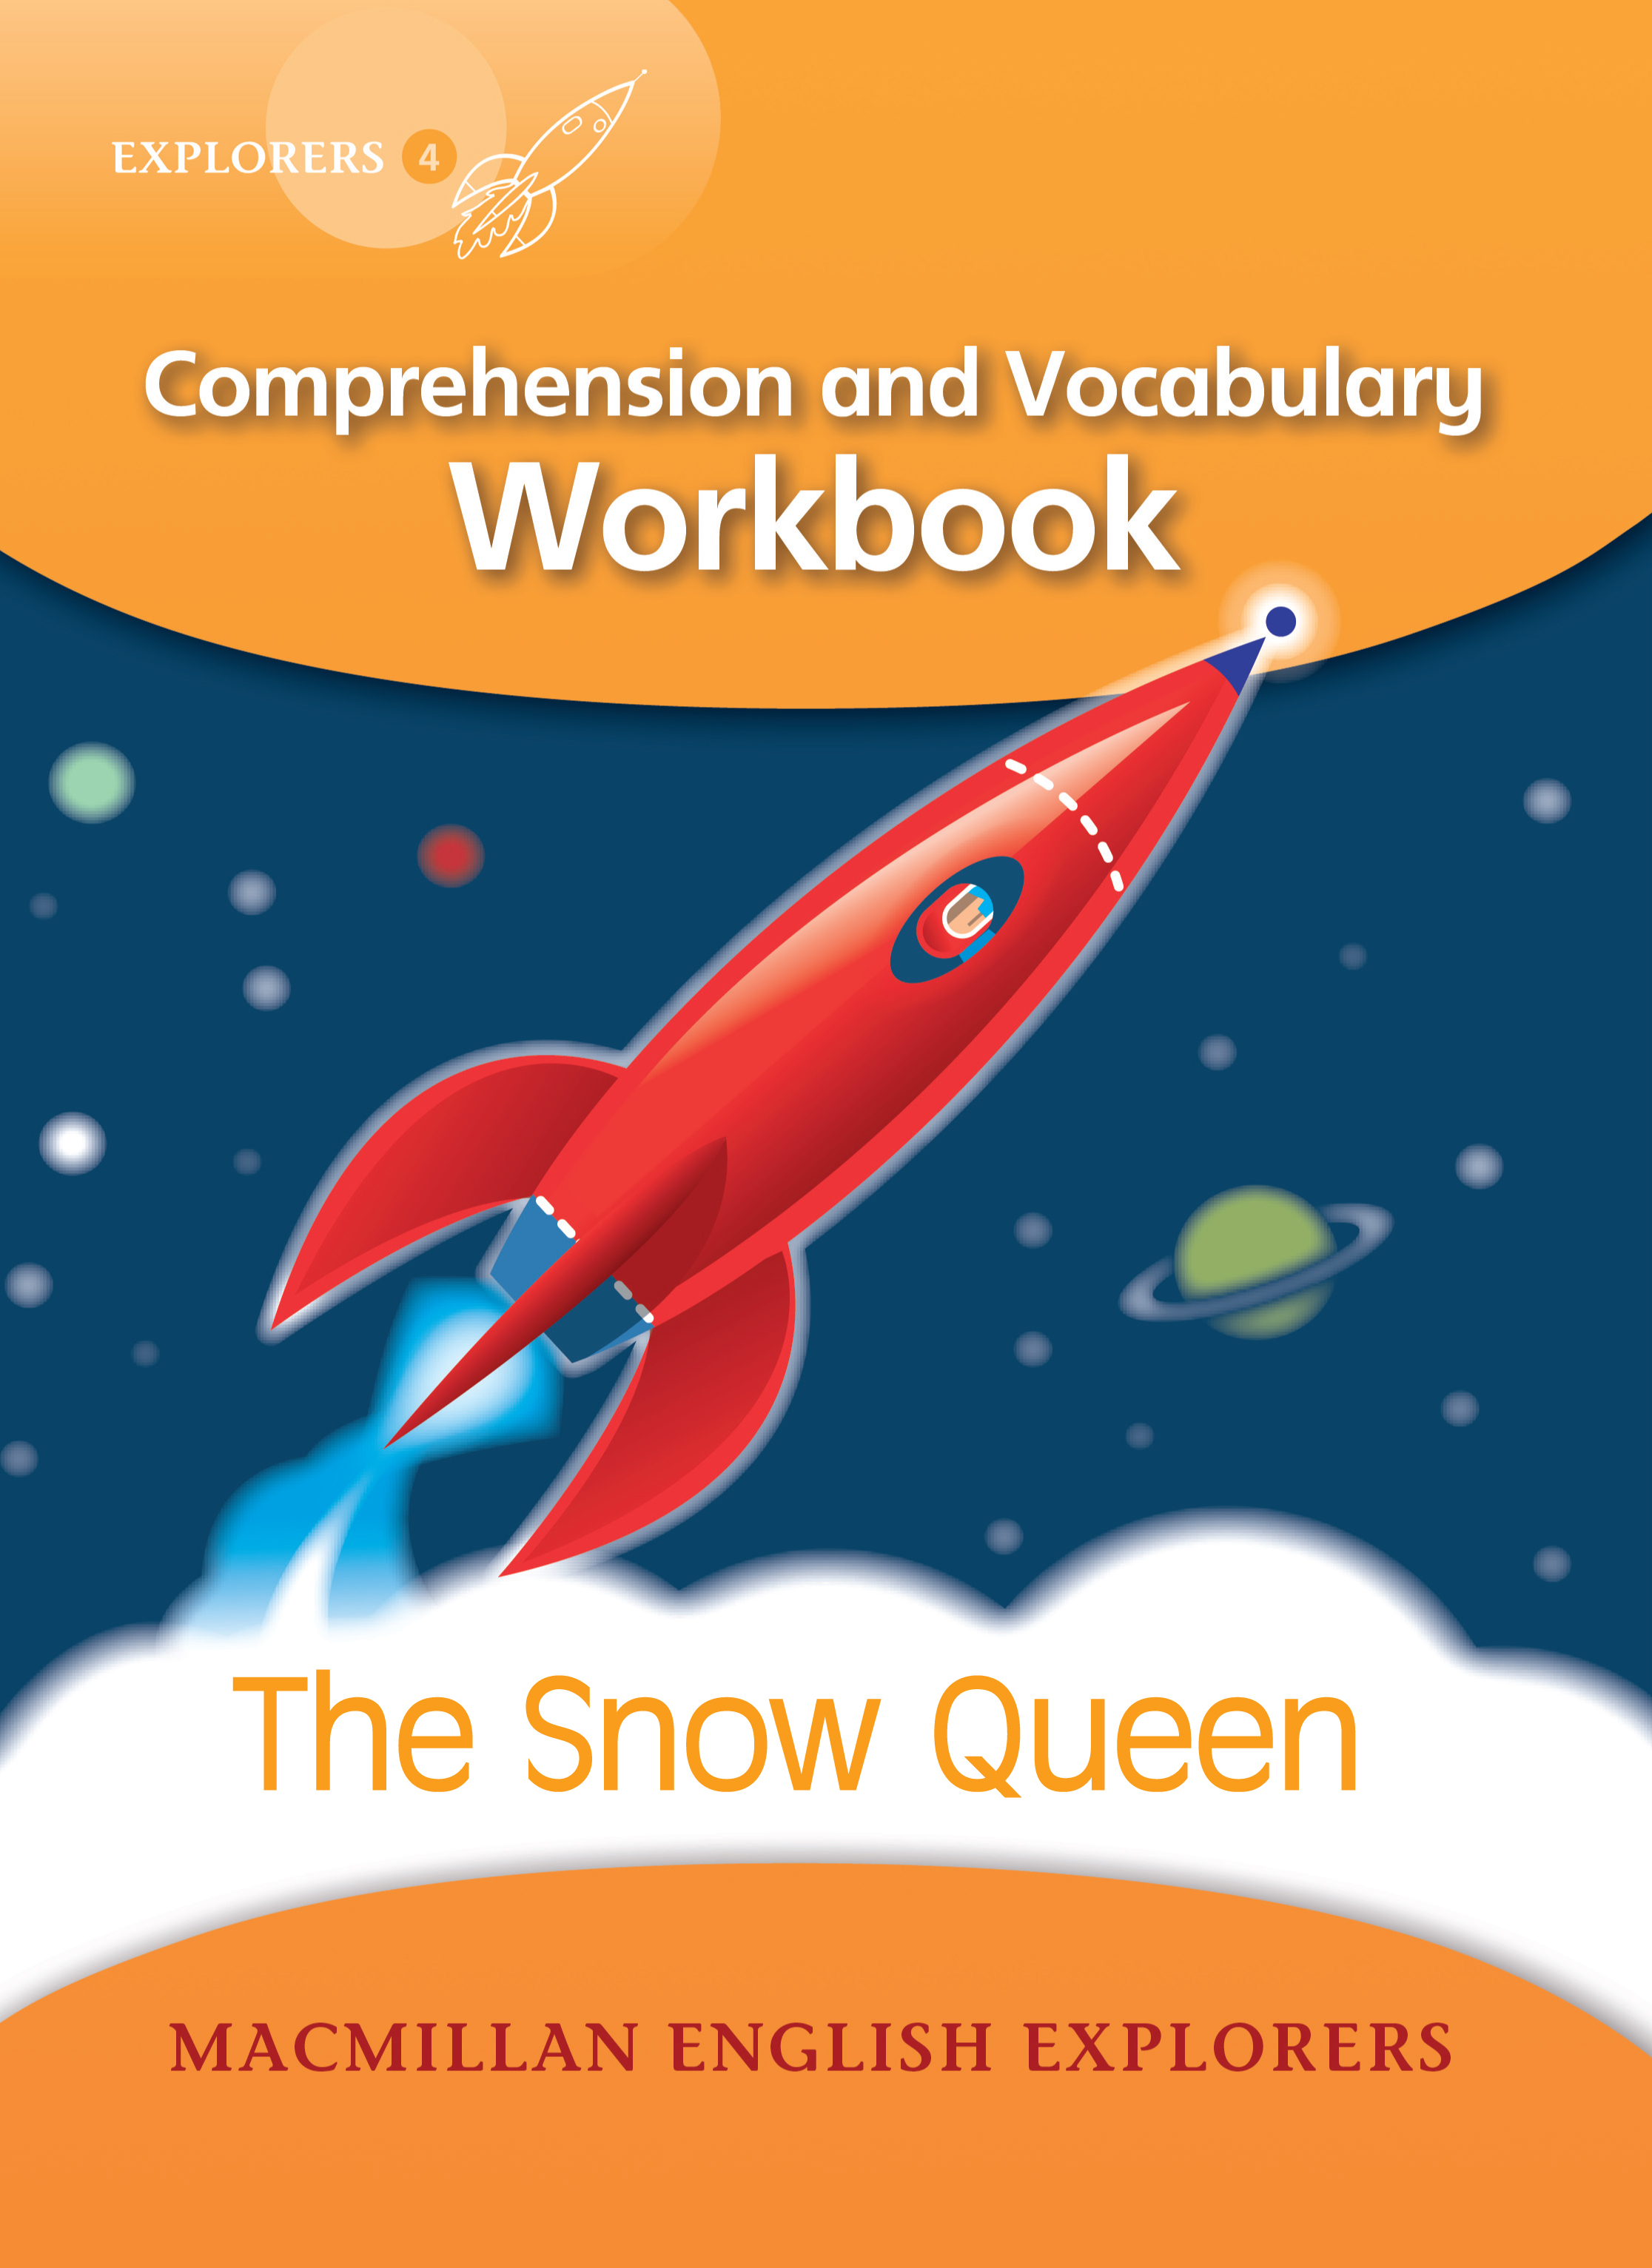 Explorers 4: The Snow Queen Workbook